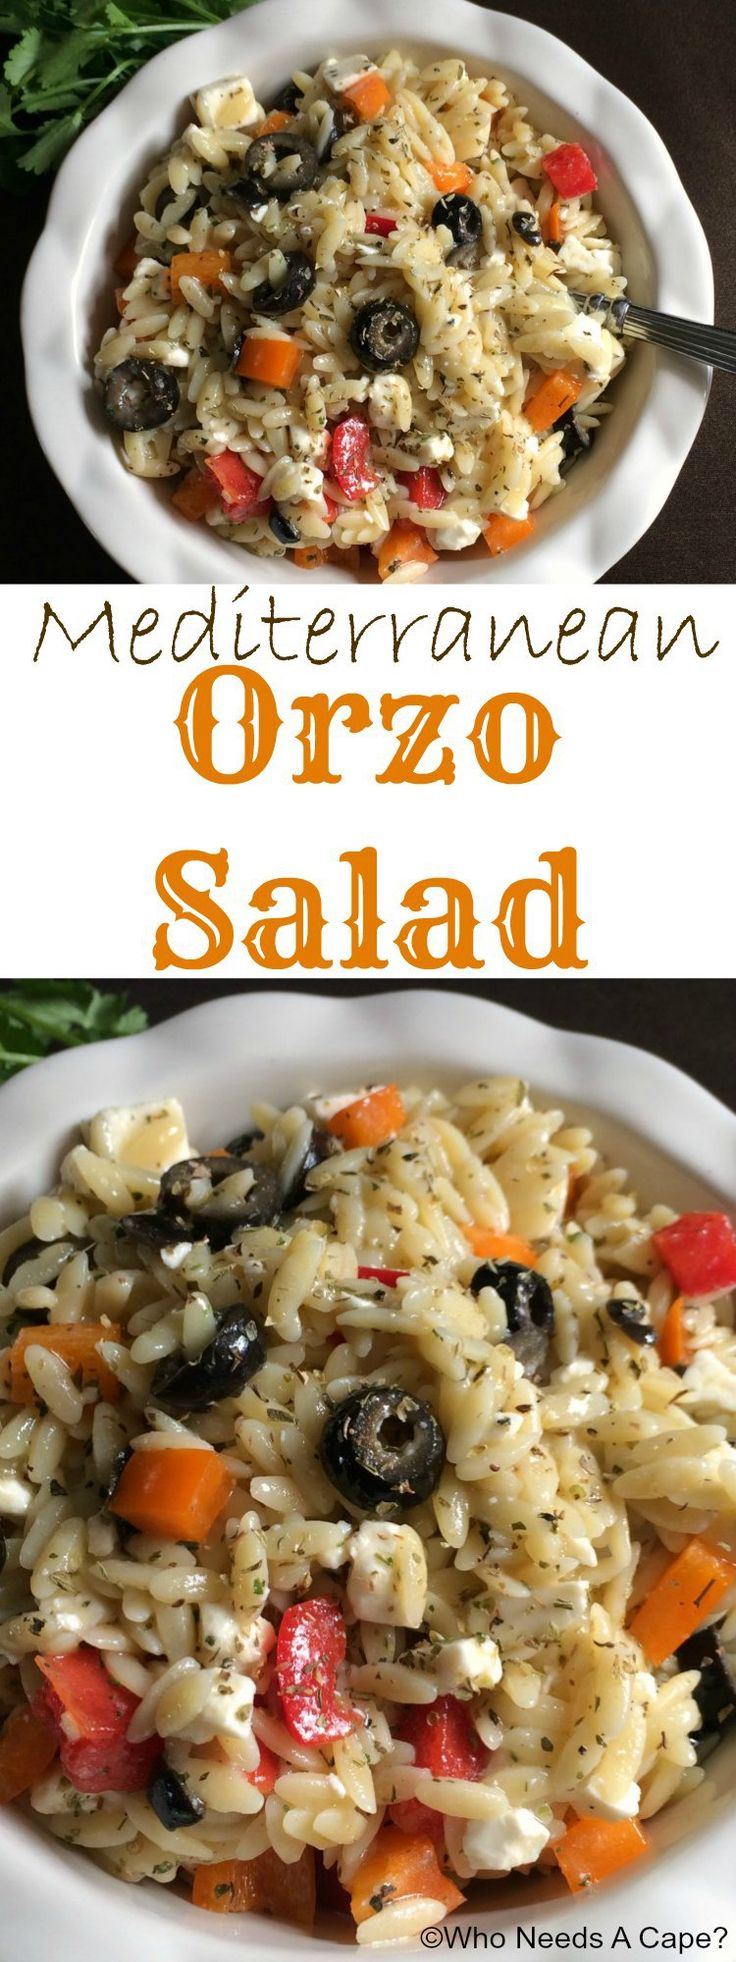 Mediterranean-Orzo-Salad-Collage.jpg (750×2000)